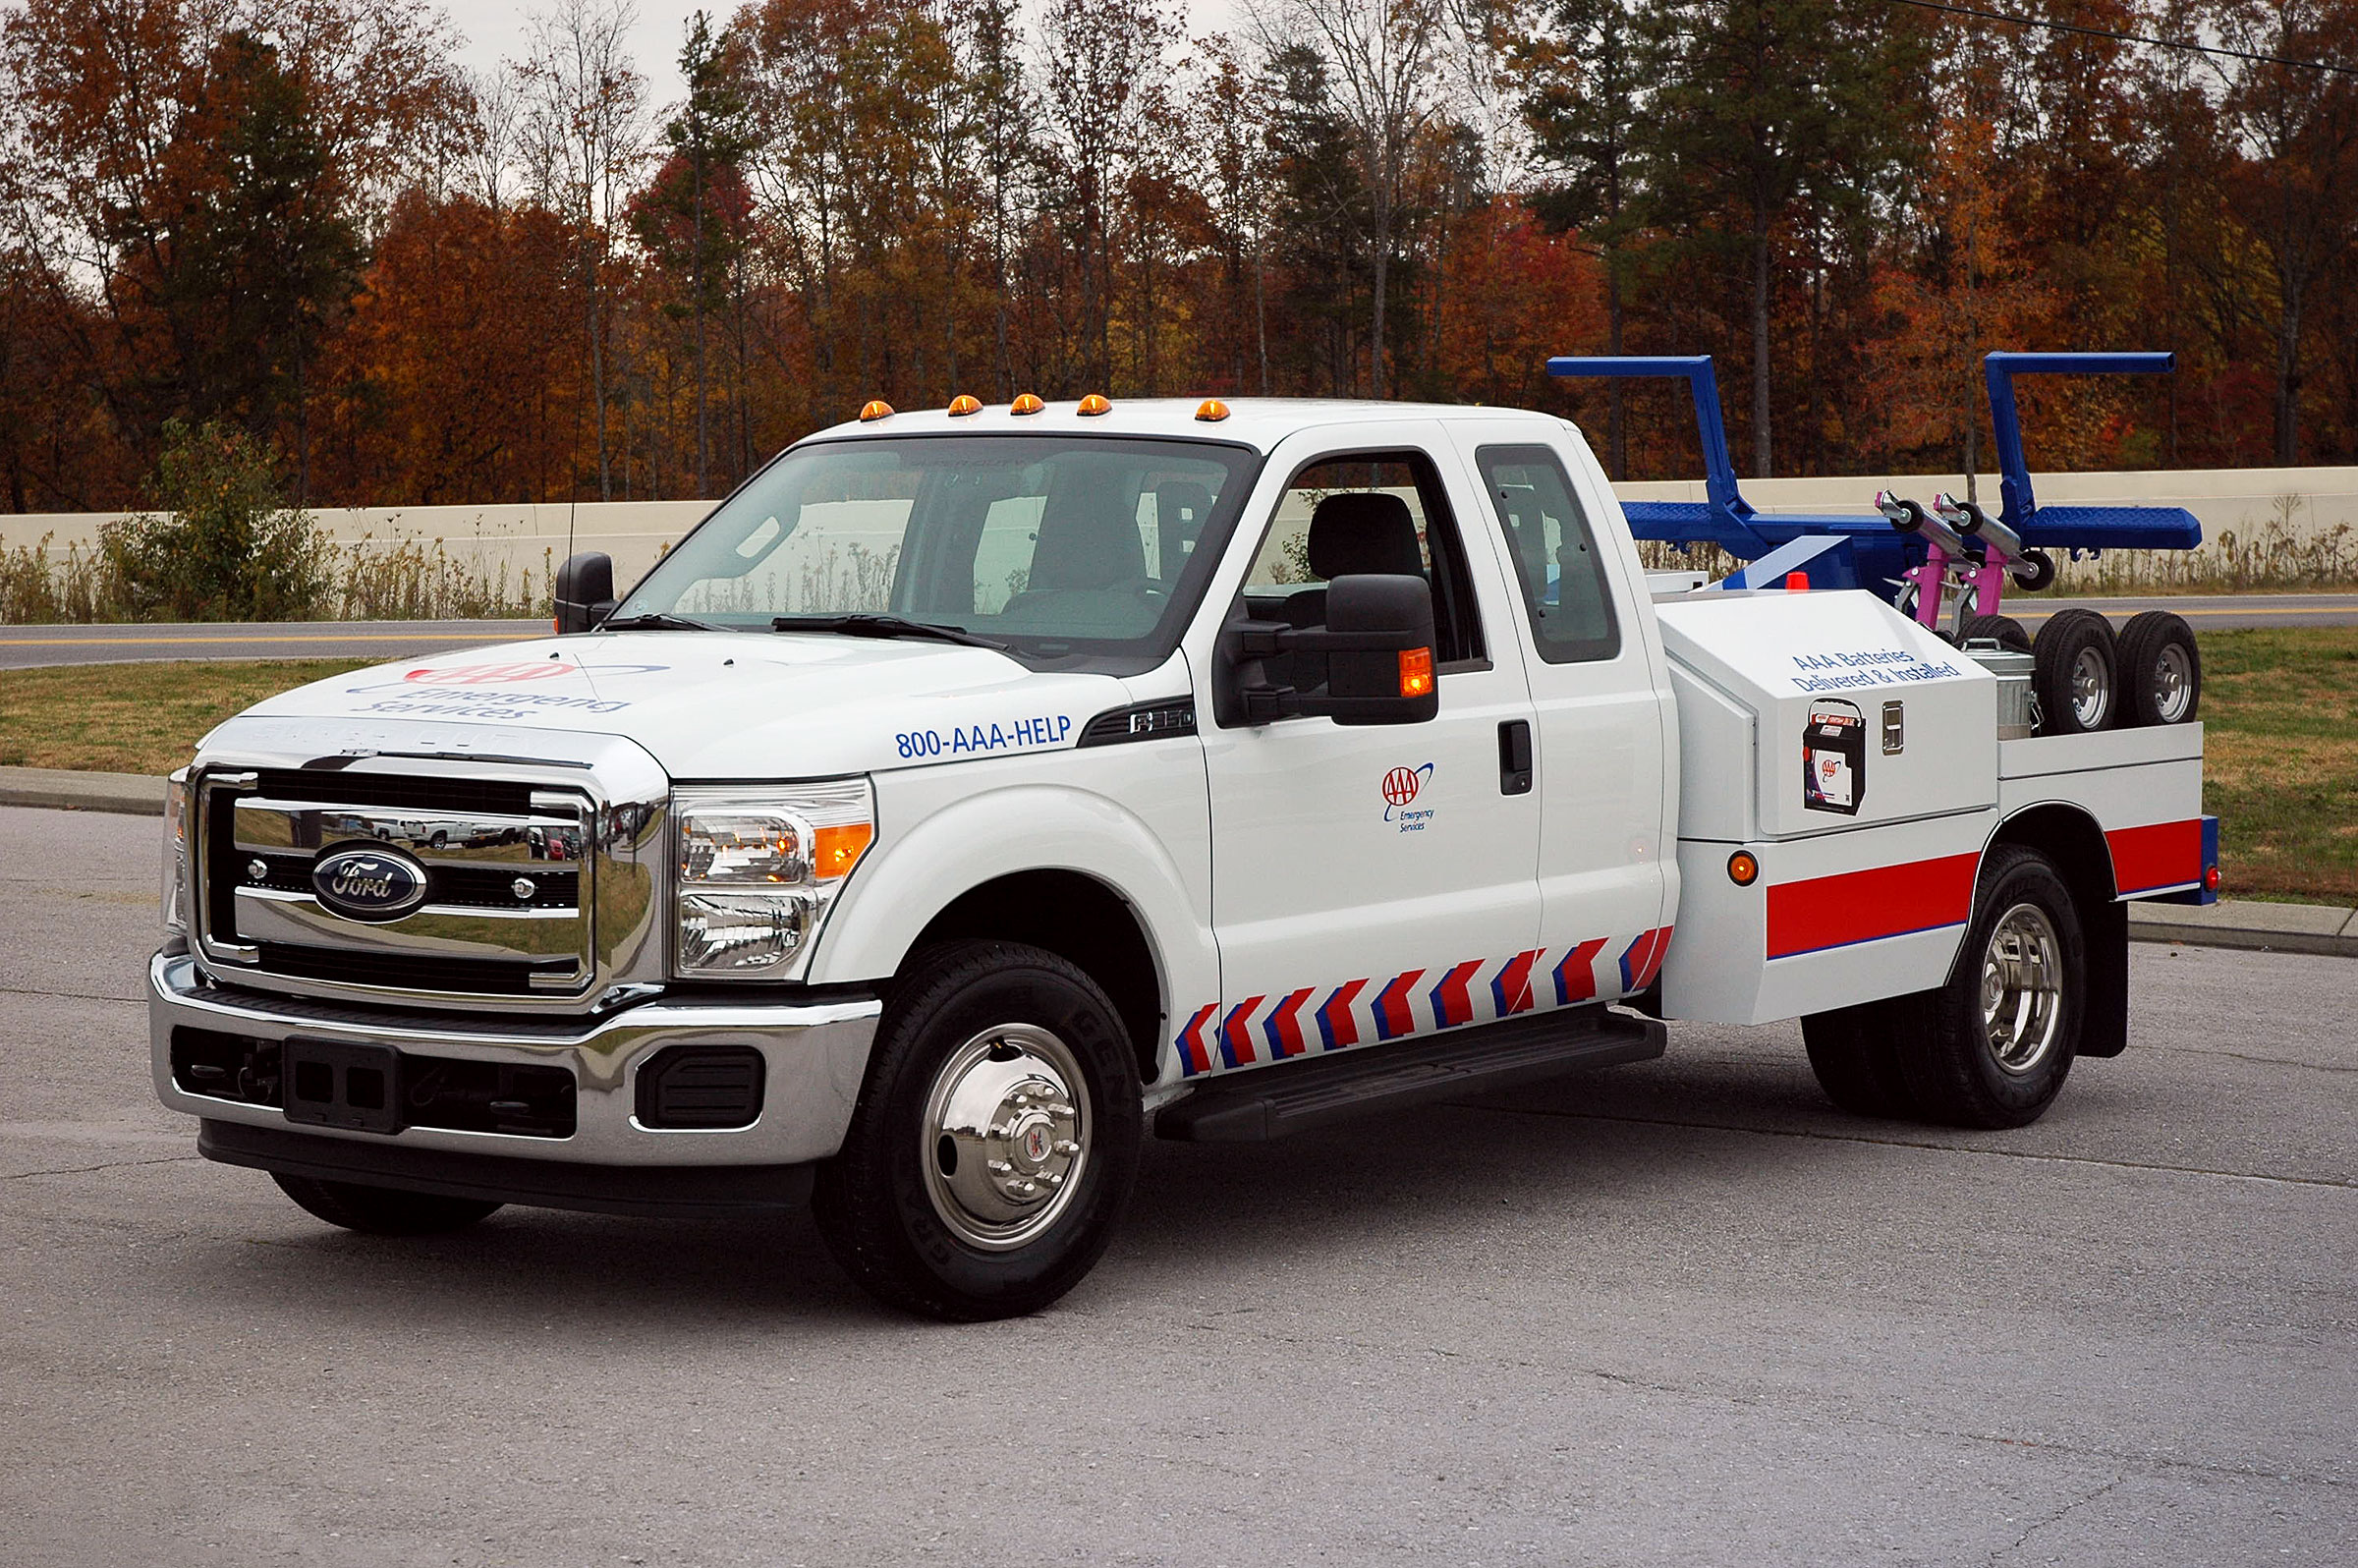 holmes-220-tow-service-vehicle-2